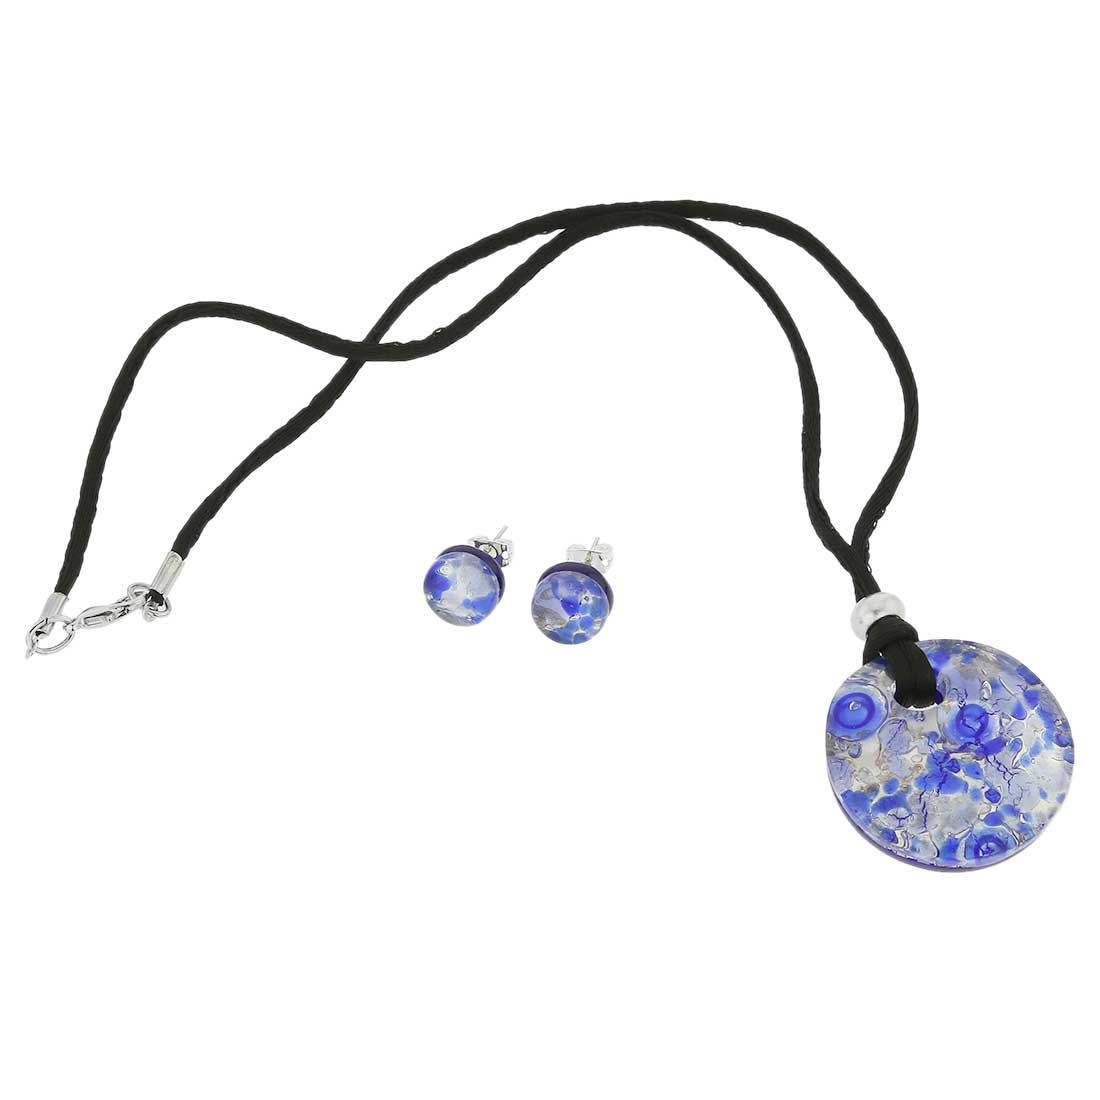 Venetian Reflections Round Jewelry Set - Periwinkle